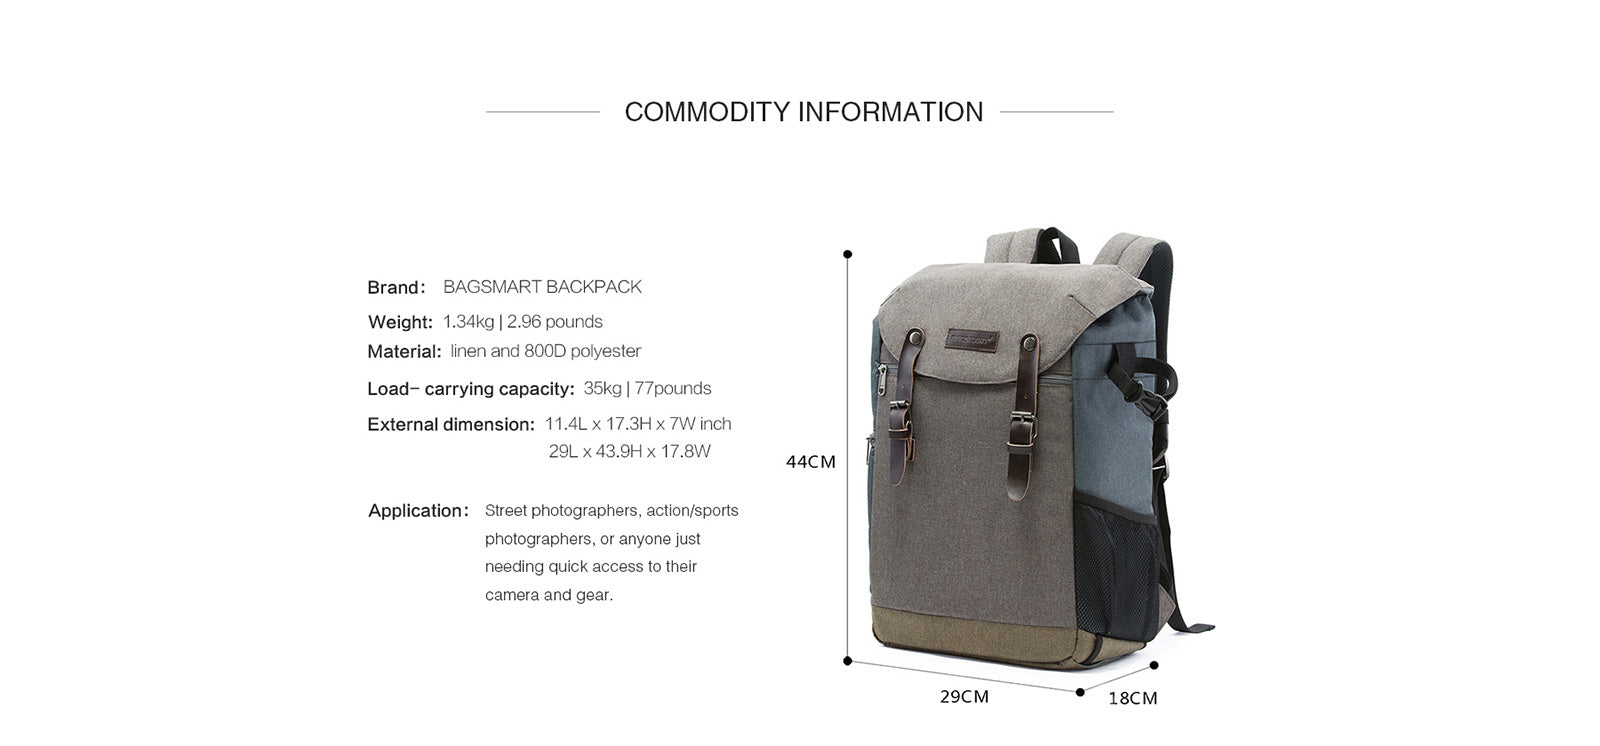 Camera Backpack with 15.6 Inch Laptop Compartment and Waterproof Rain Cover for SLR/DSLR Cameras and Accessories